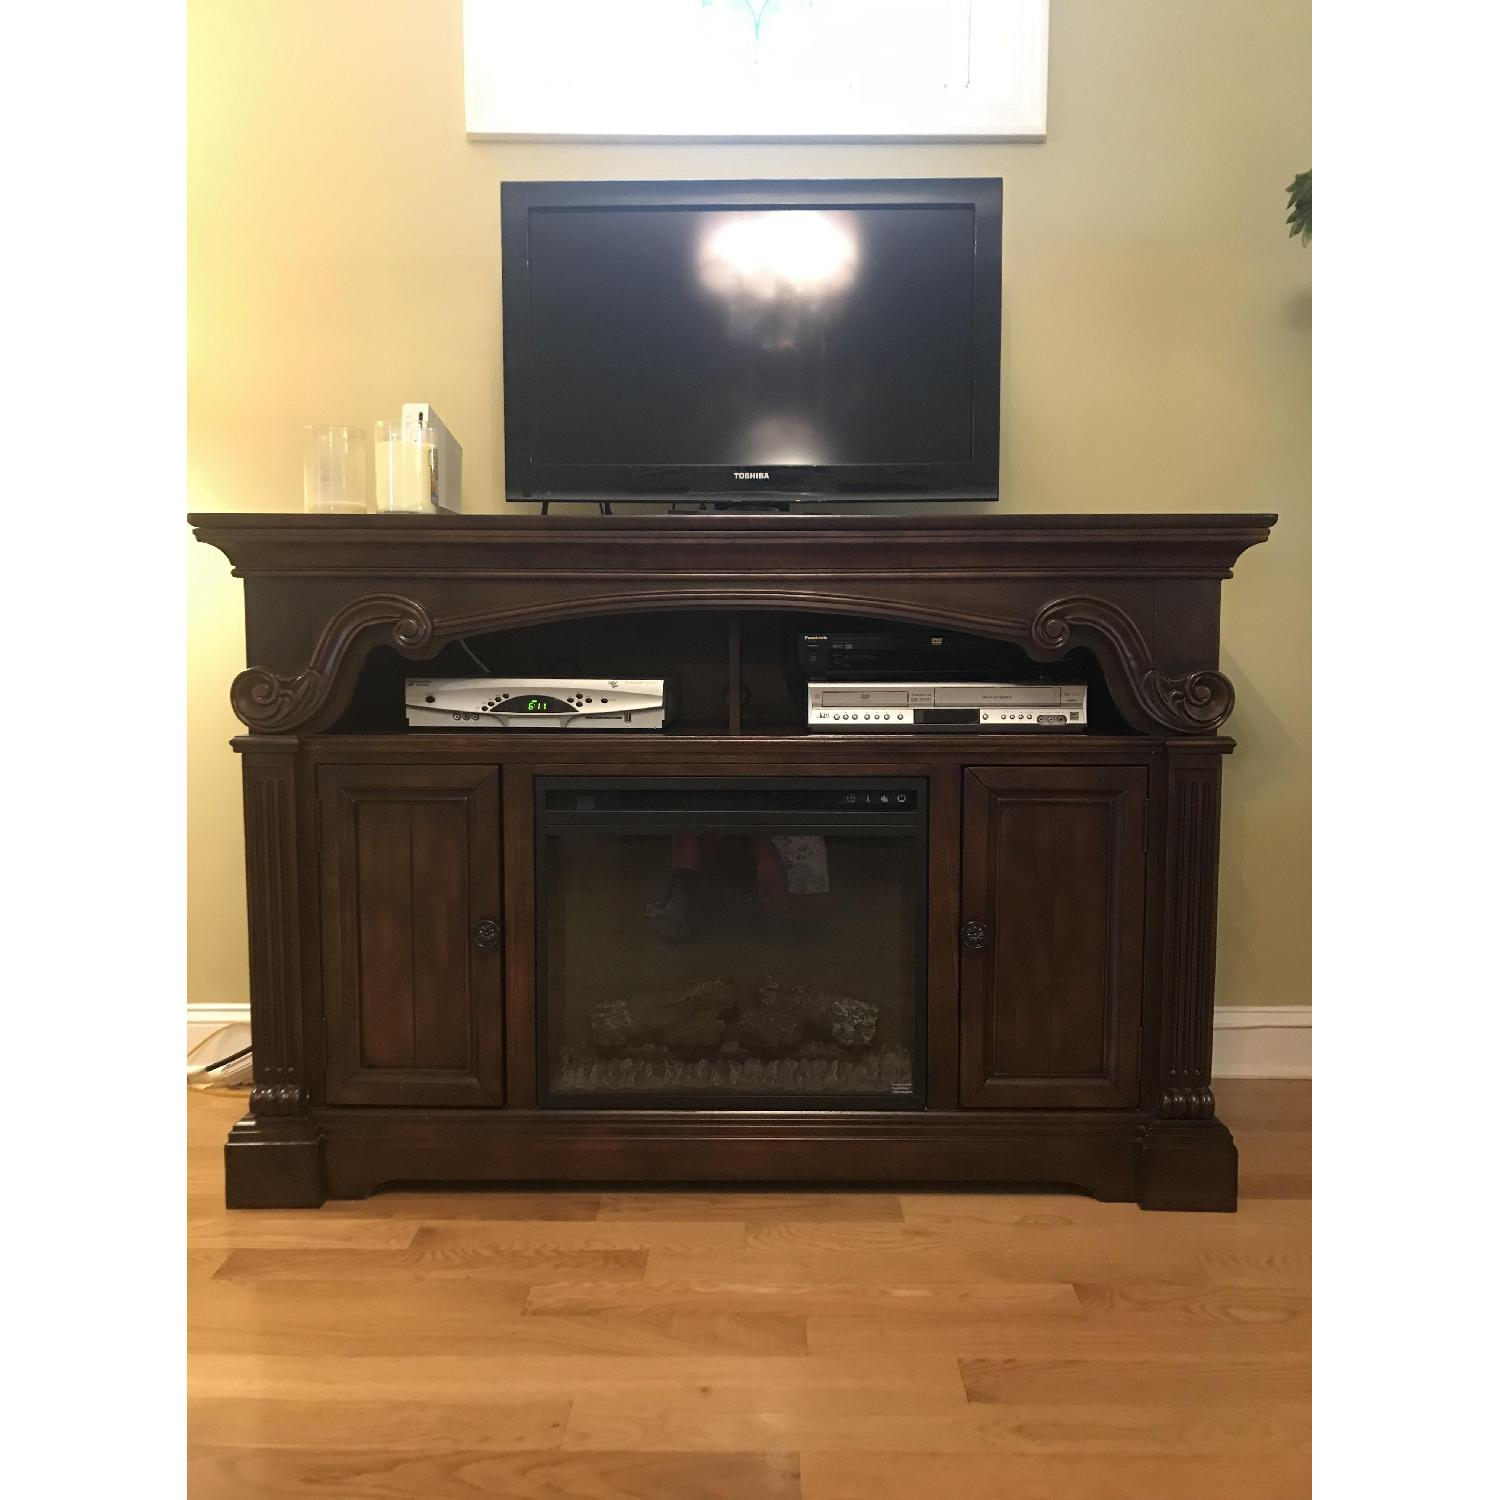 Ashley TV Stand w/ Electric Fireplace - image-1